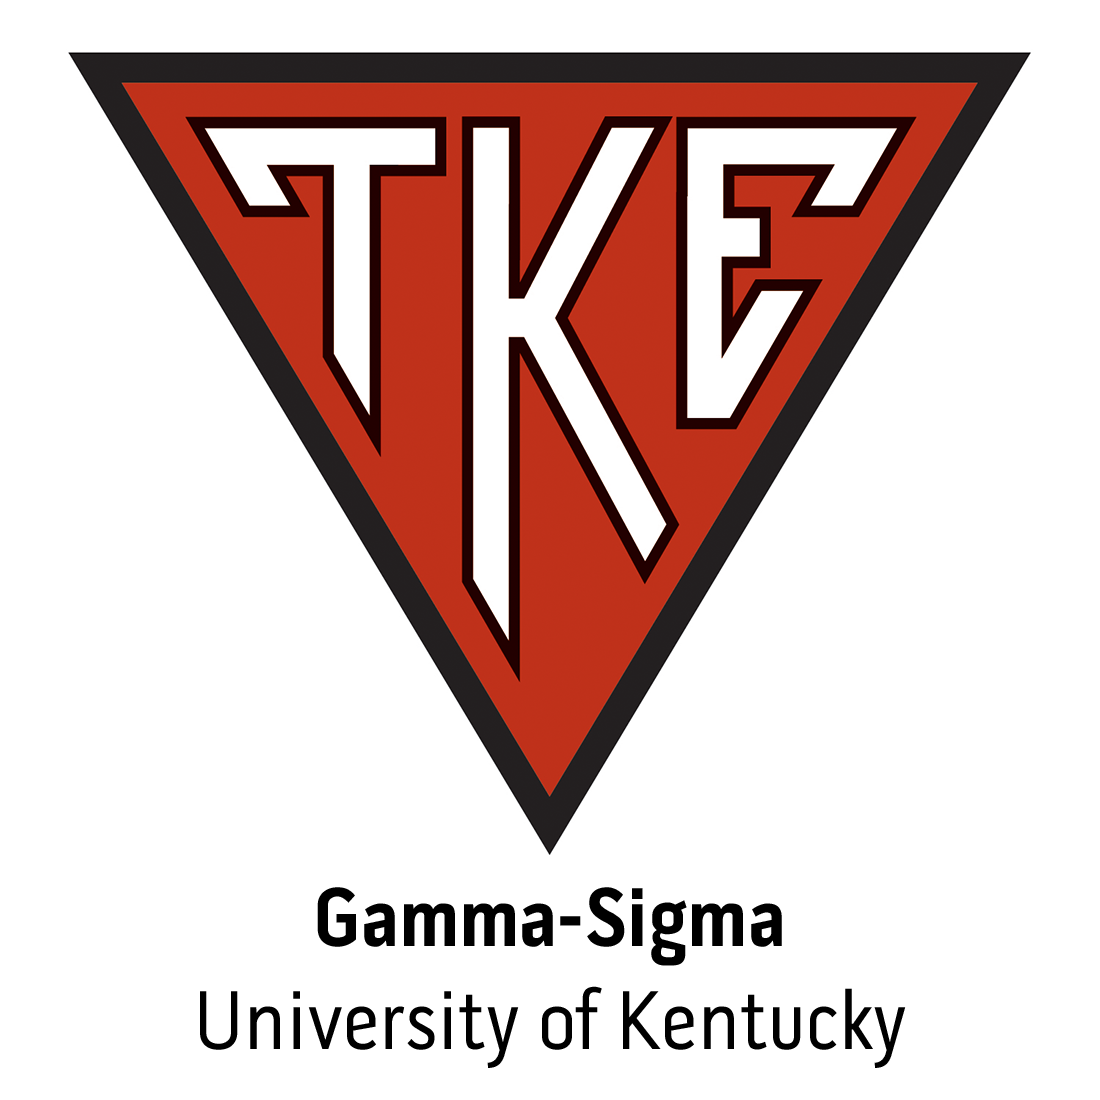 Gamma-Sigma Colony at University of Kentucky